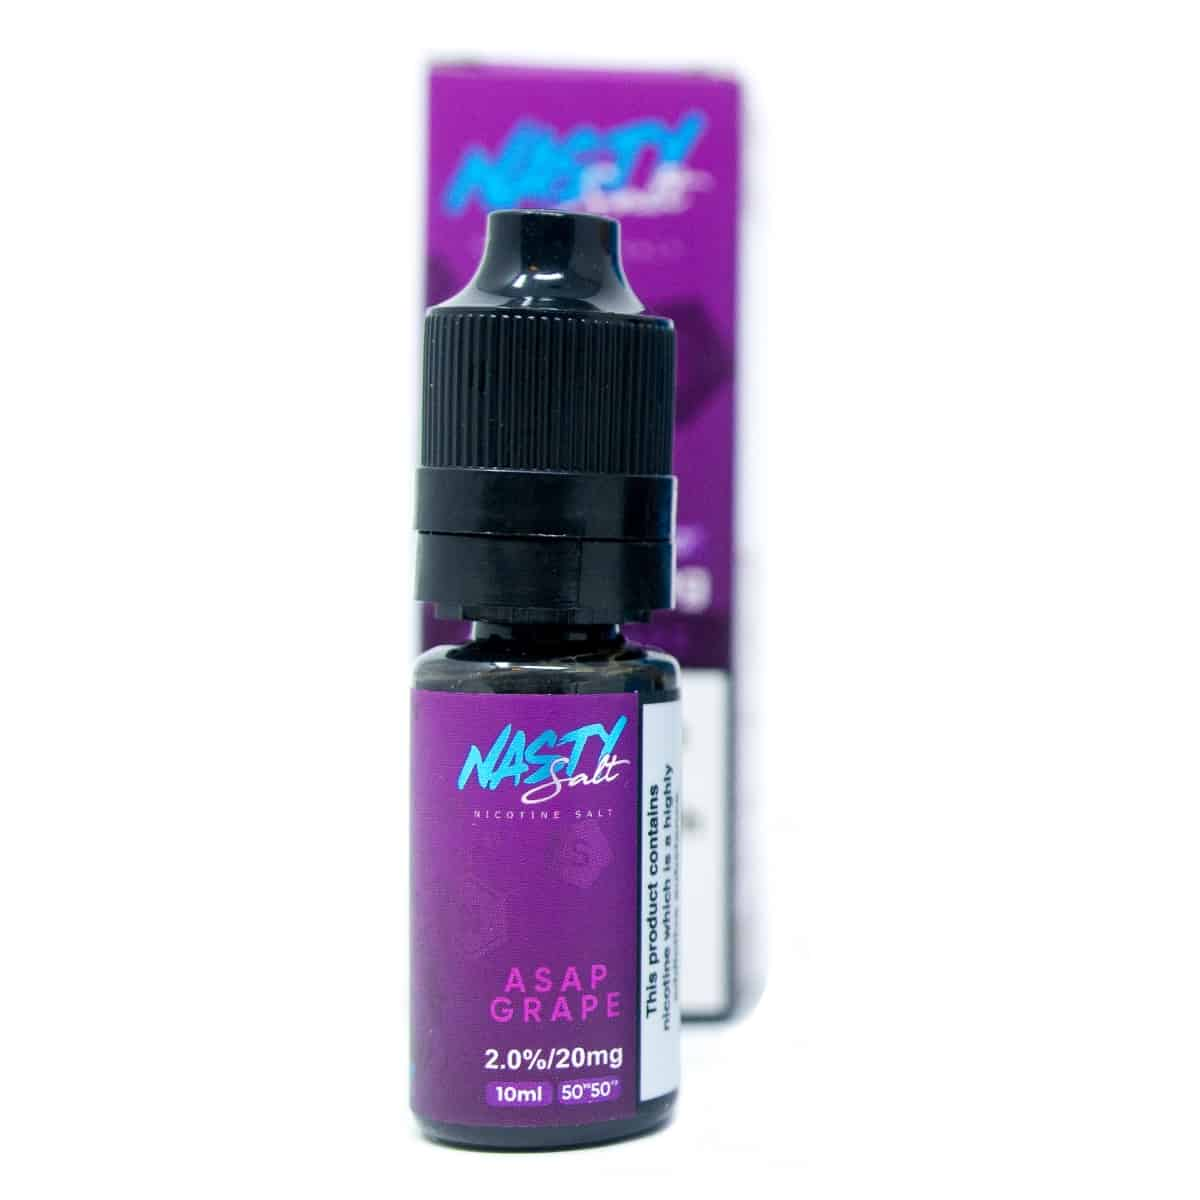 Asap Grape Nasty Juice Salt 20mg 10ml